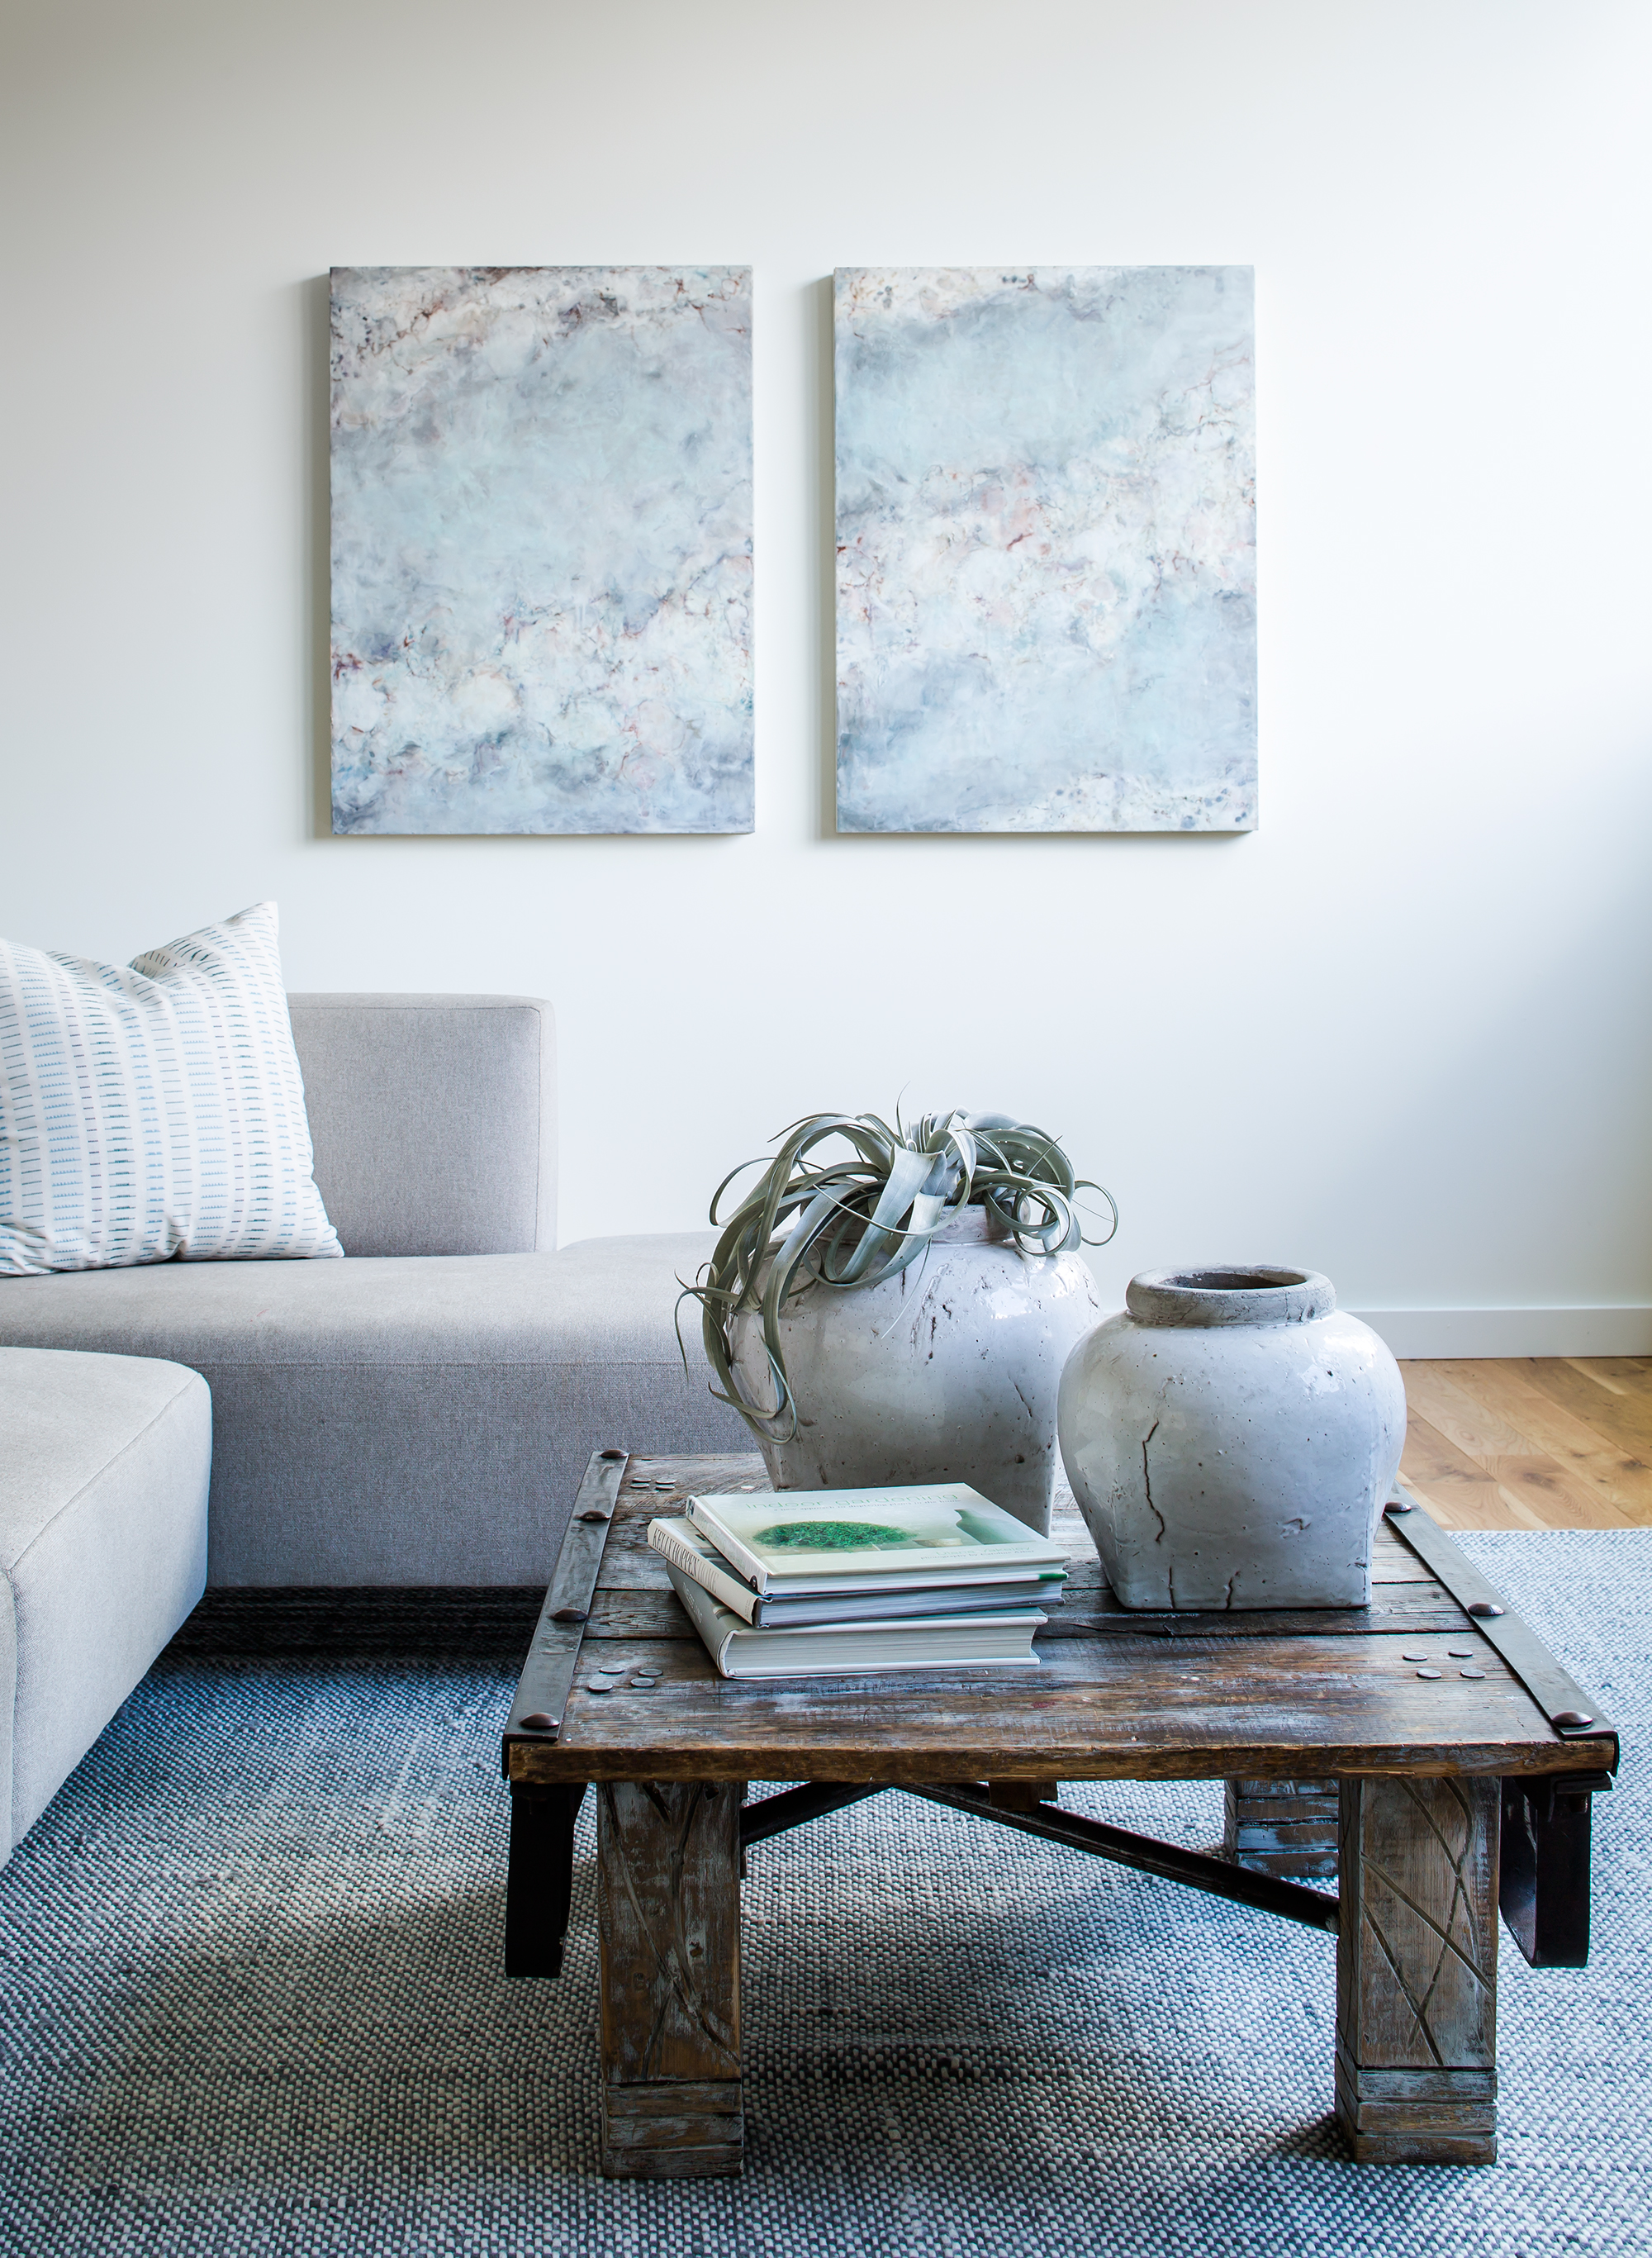 modern on conncecticut ave living room   jeff herr photography